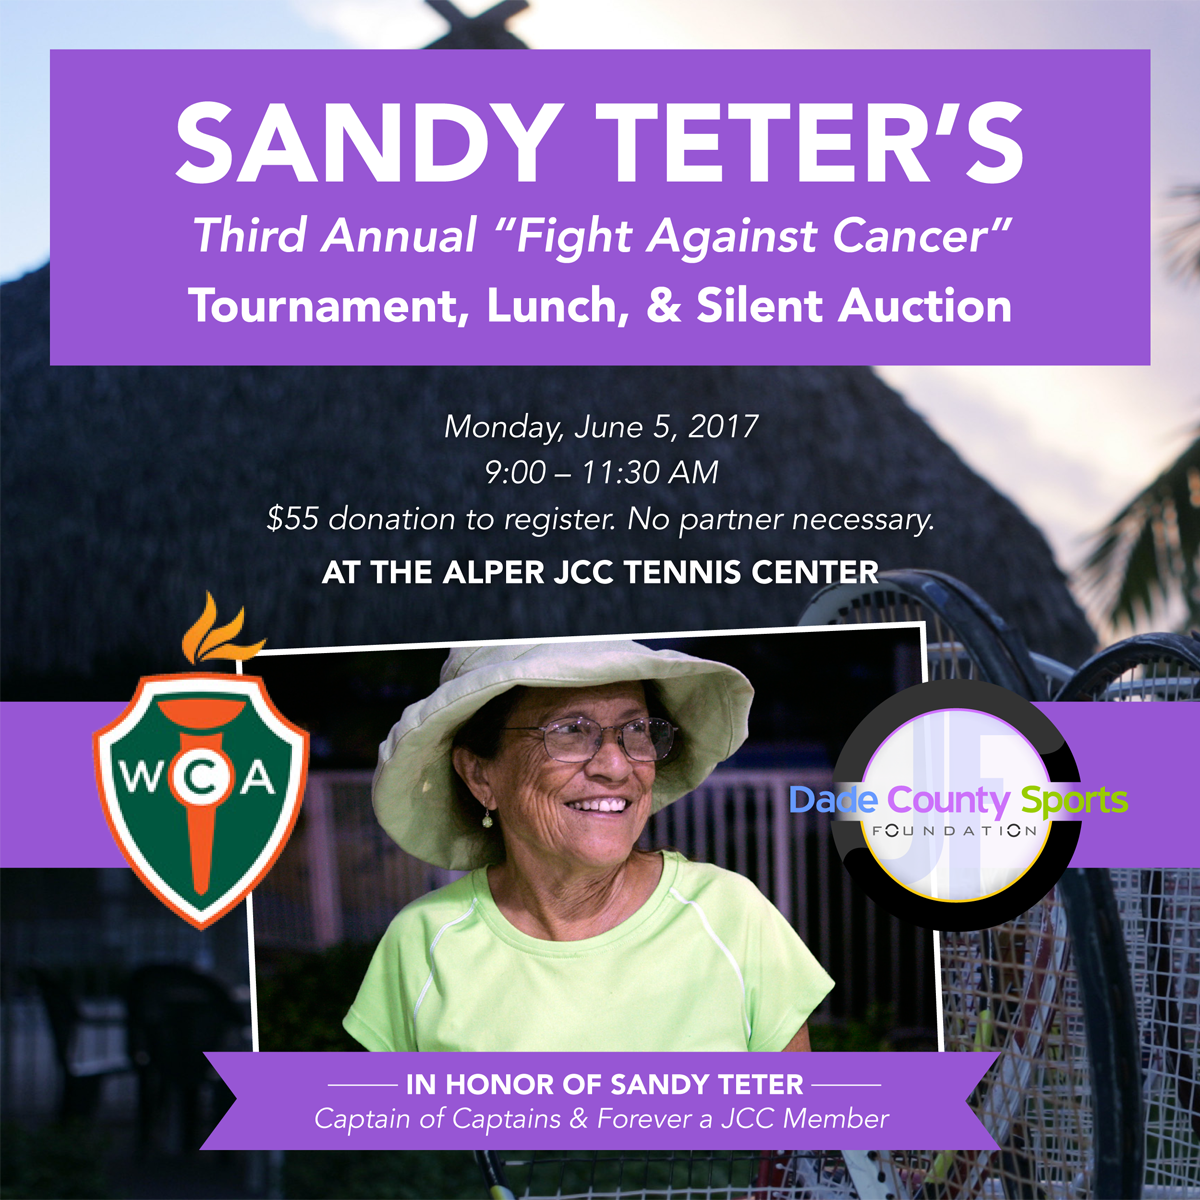 Sandy Teter's Third Annual Fight Against Cancer Tournament 2017